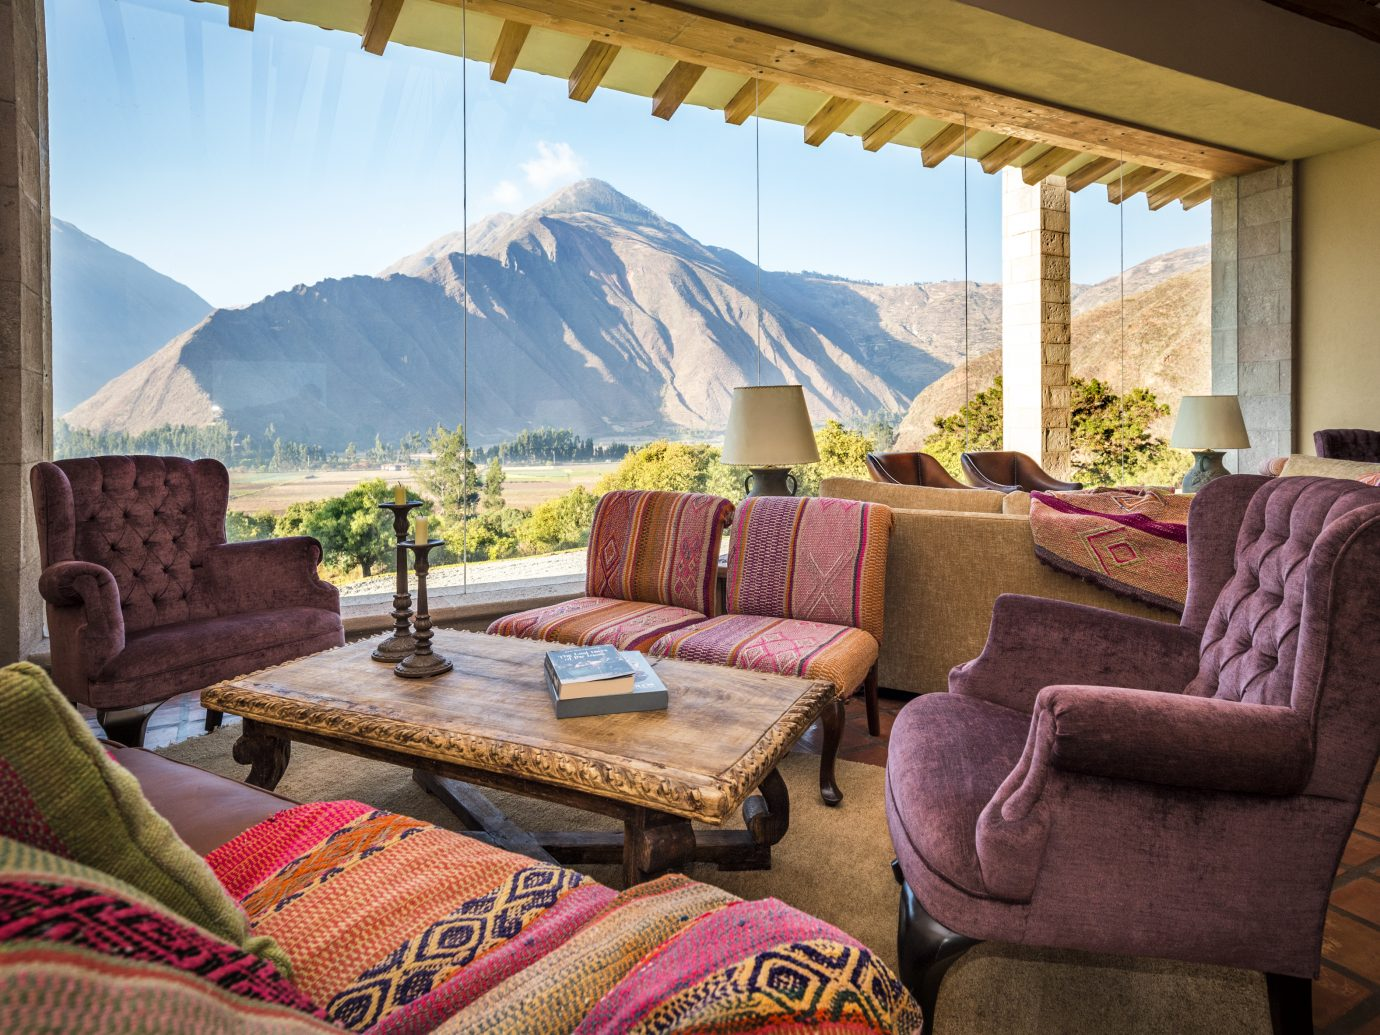 view of mountain from the living room at inkaterra hacienda urubamba